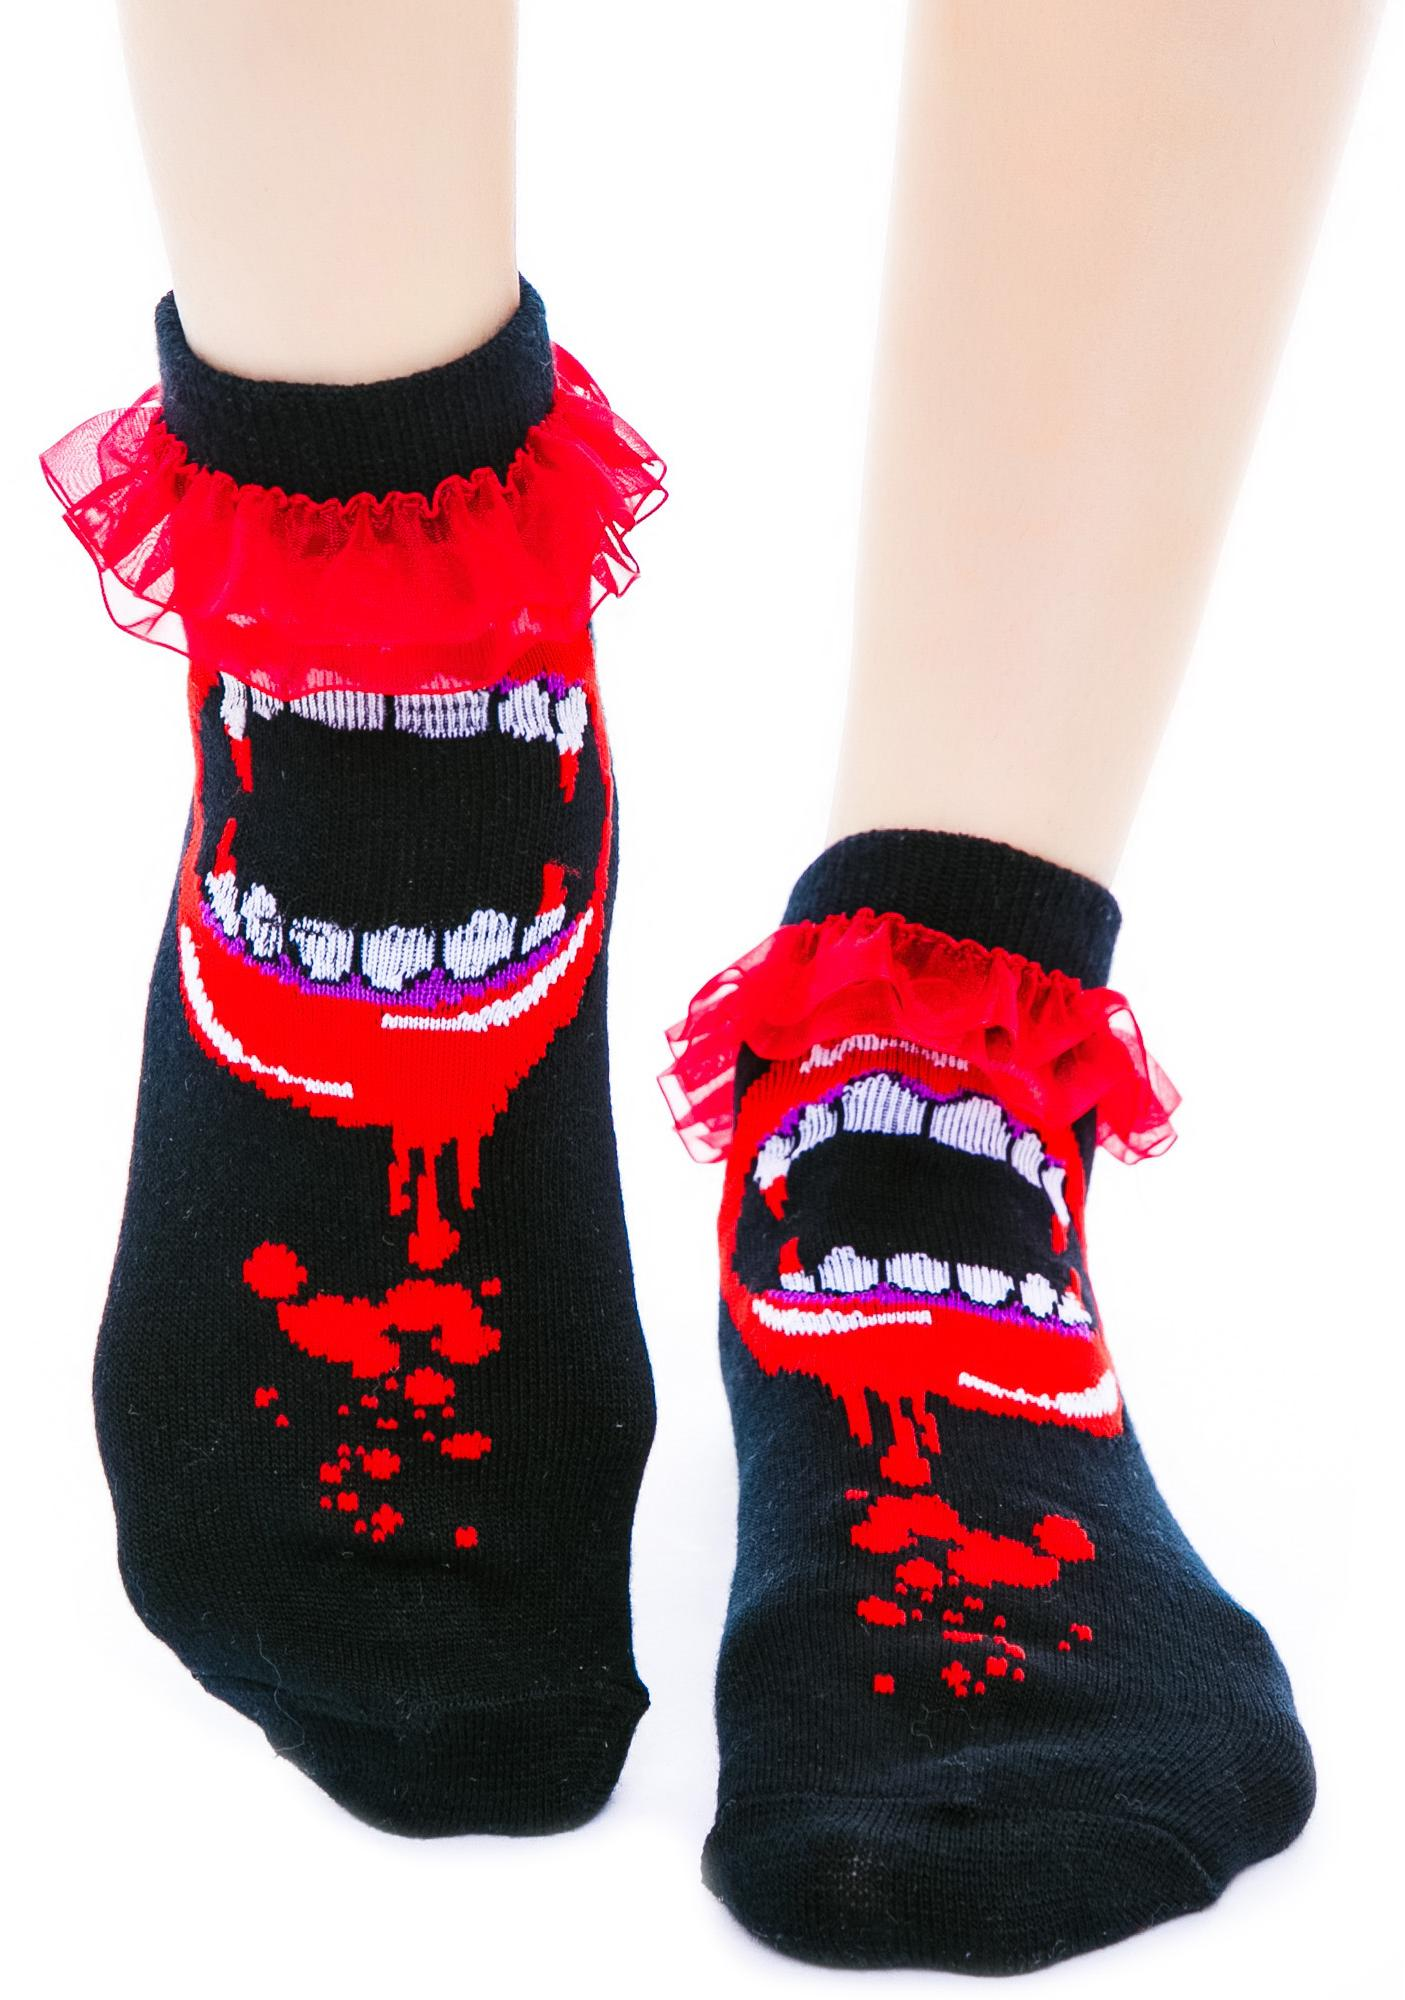 Too Fast Bite Me Fangs Ruffle Ankle Socks